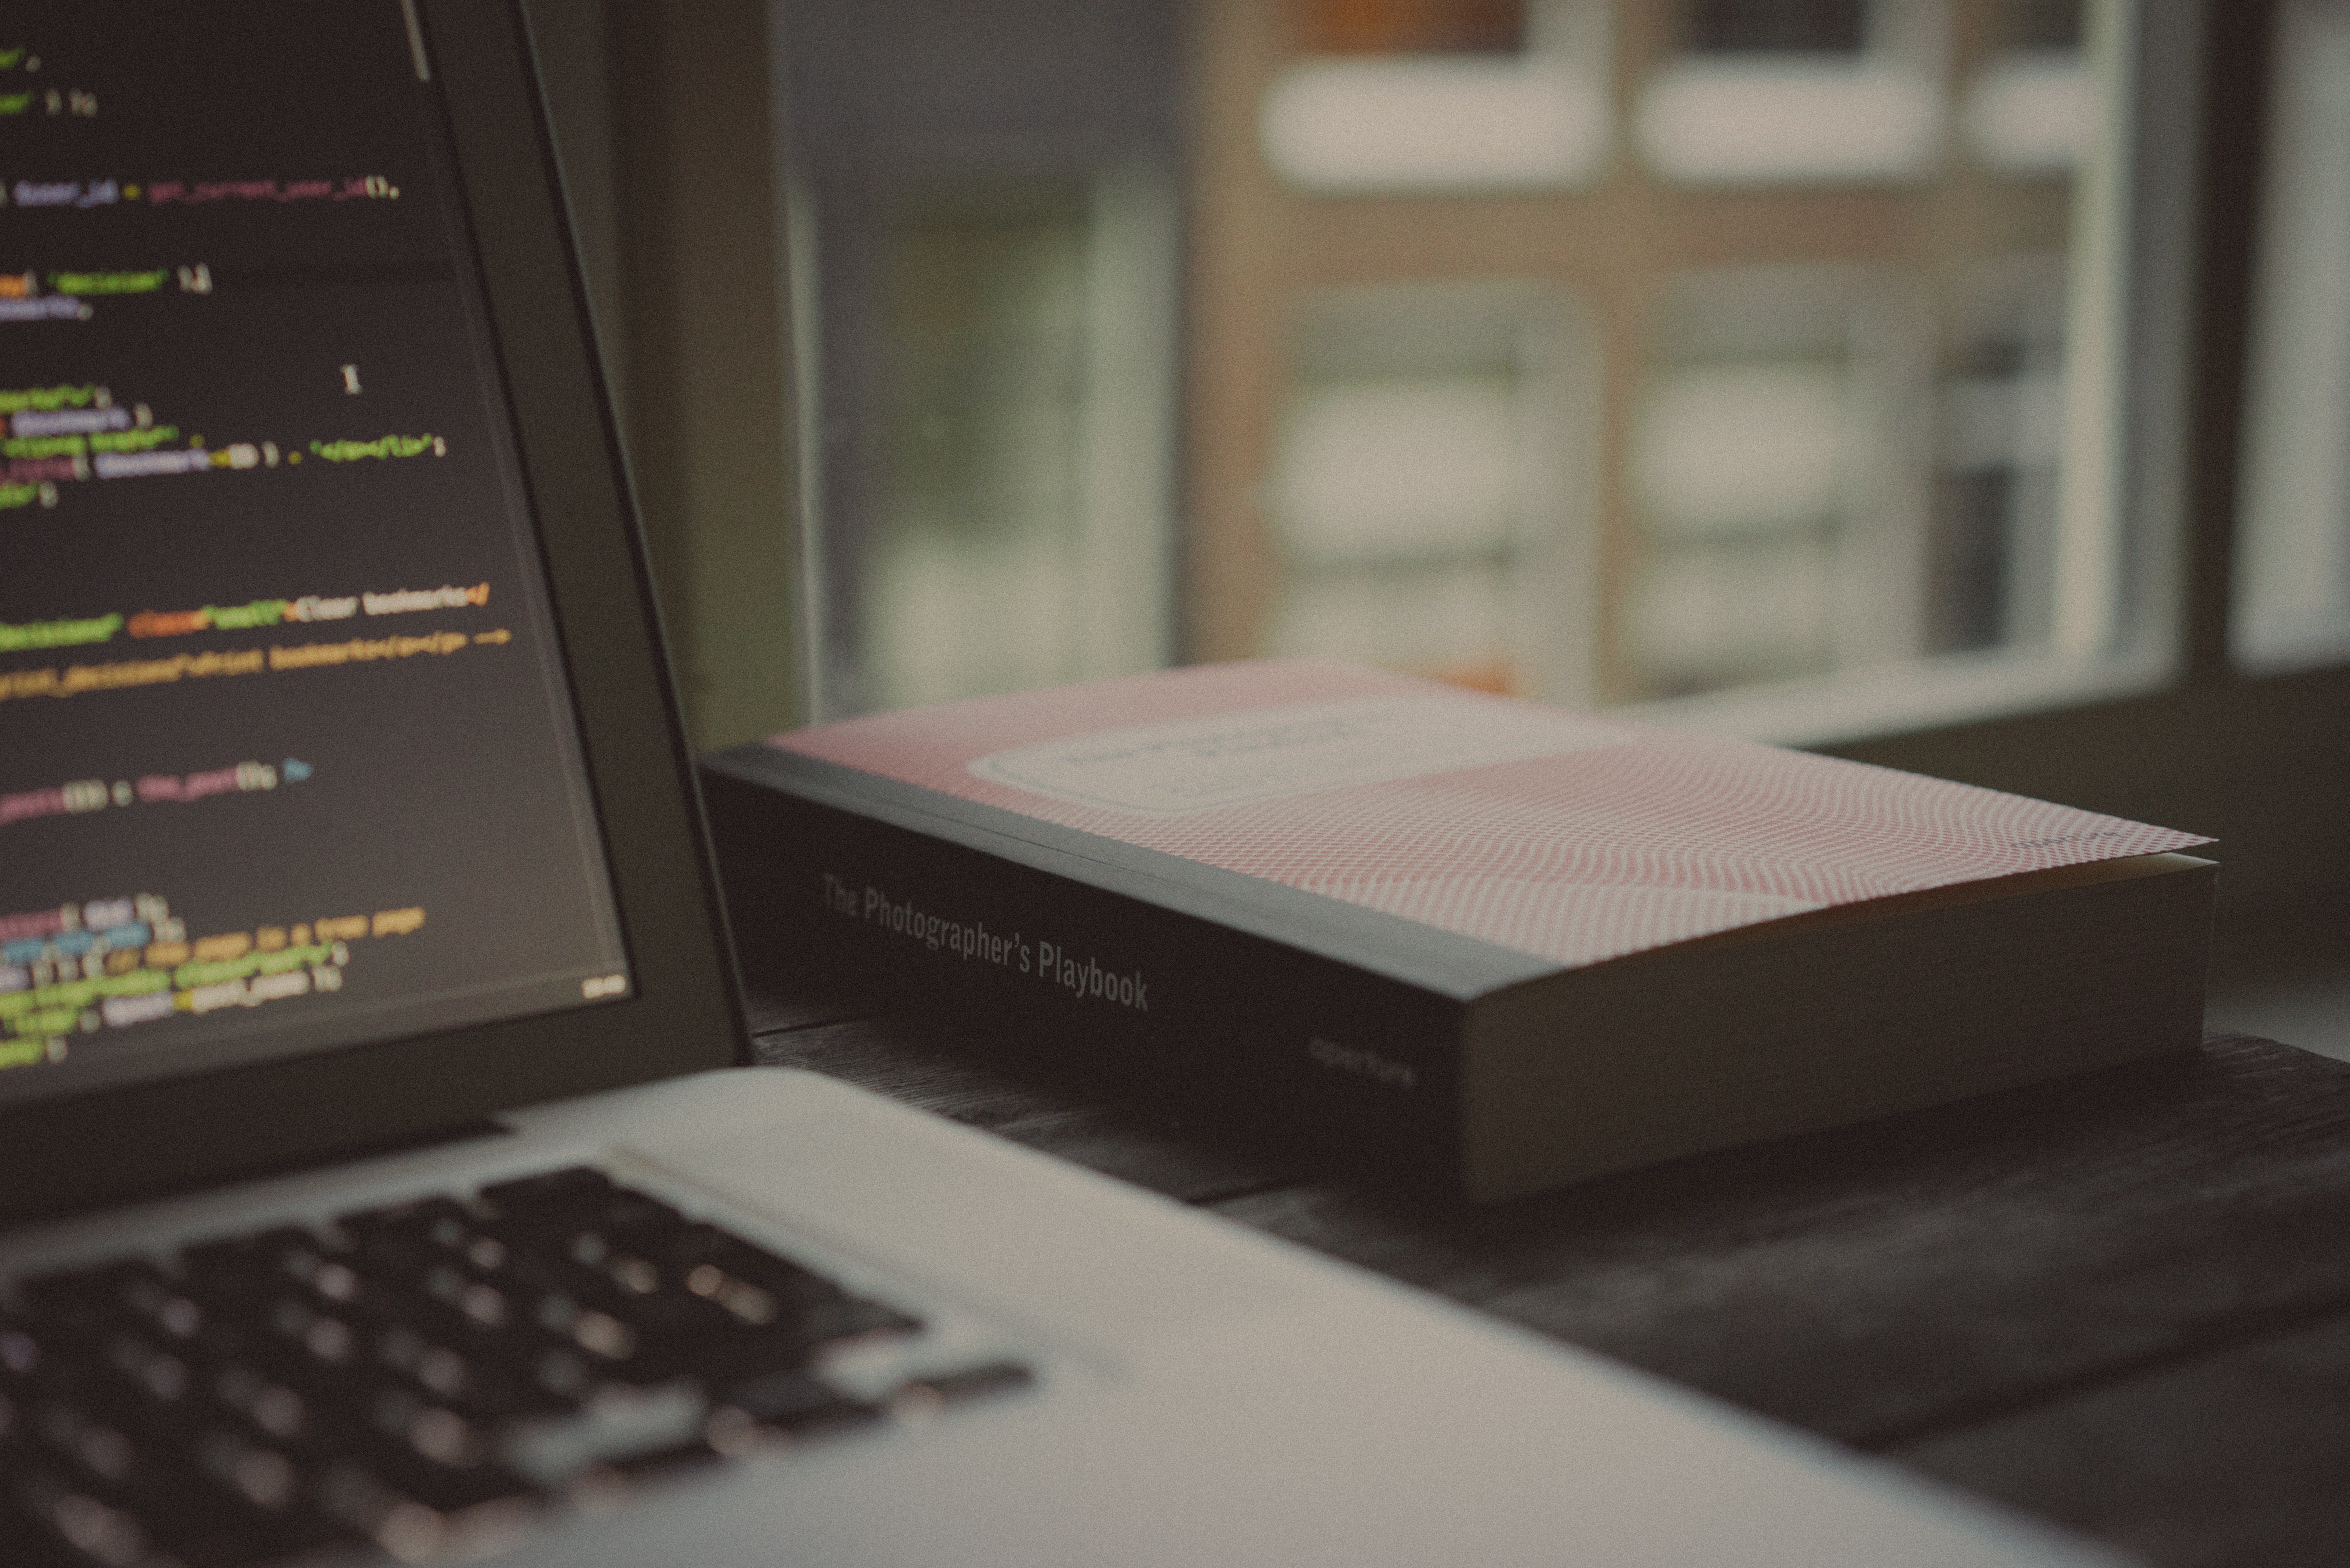 """""""The Photographer's Playbook"""" on a desk next to a laptop with lines of code on its screen"""